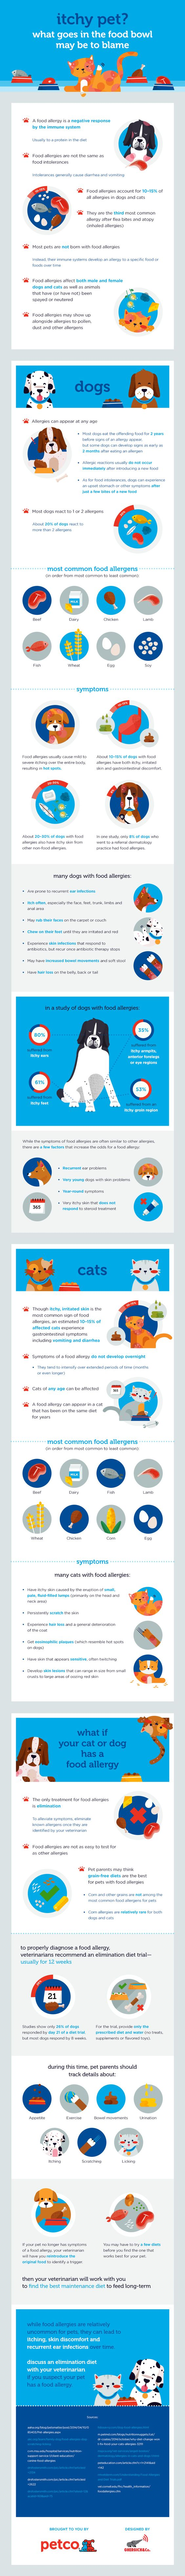 Food allergies account for 10–15% of all allergies in dogs and cats. Learn about symptoms, the most common food allergens, and what to do if your dog or cat has a food allergy using the infographic below. You can also explore limited ingredient diets for your pet using Petco's Pet Food Advisor.